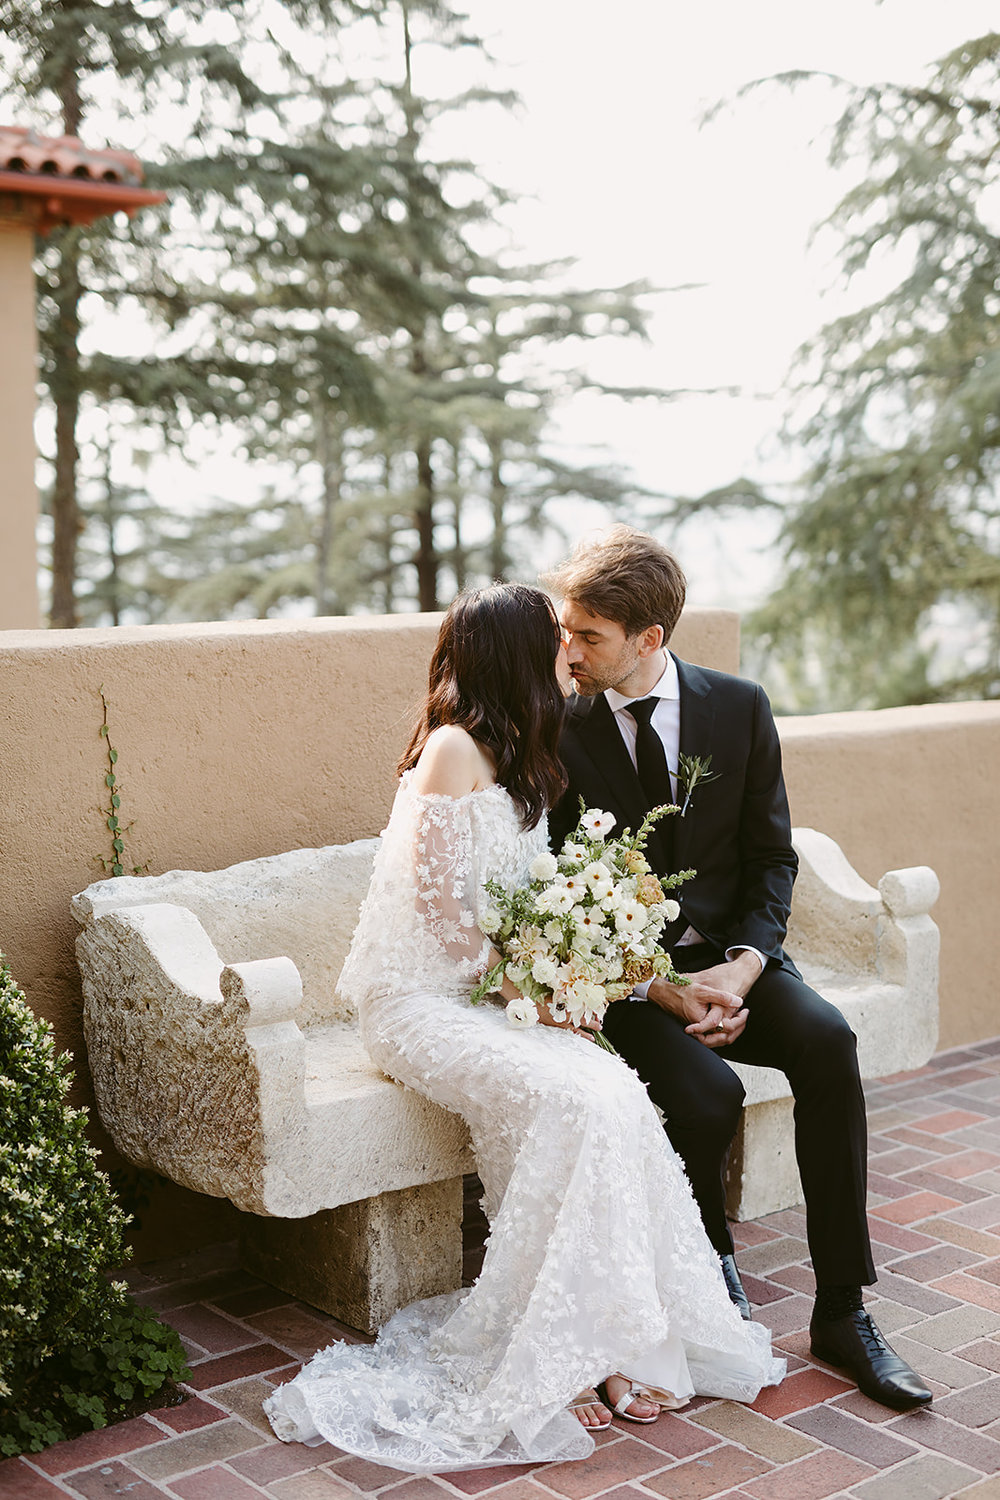 Jena + Curt | Paramour Mansion in Los Angeles